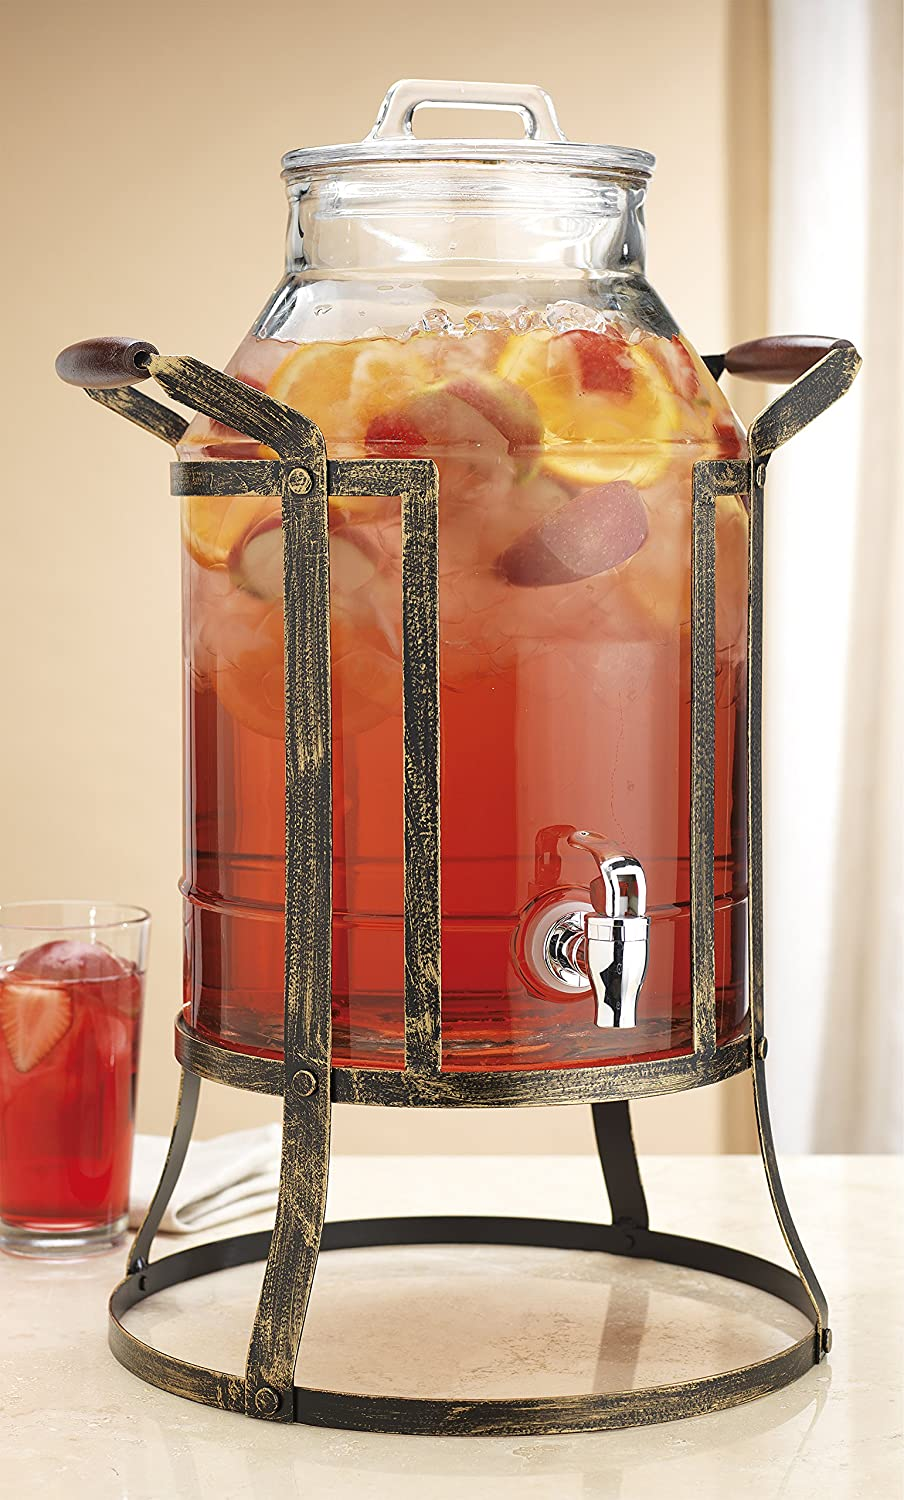 Classic Beverage Panel Drink Dispenser Durable Glass 3 Gallon with Spigot in Metal Caddy HC COMINHKPR132826